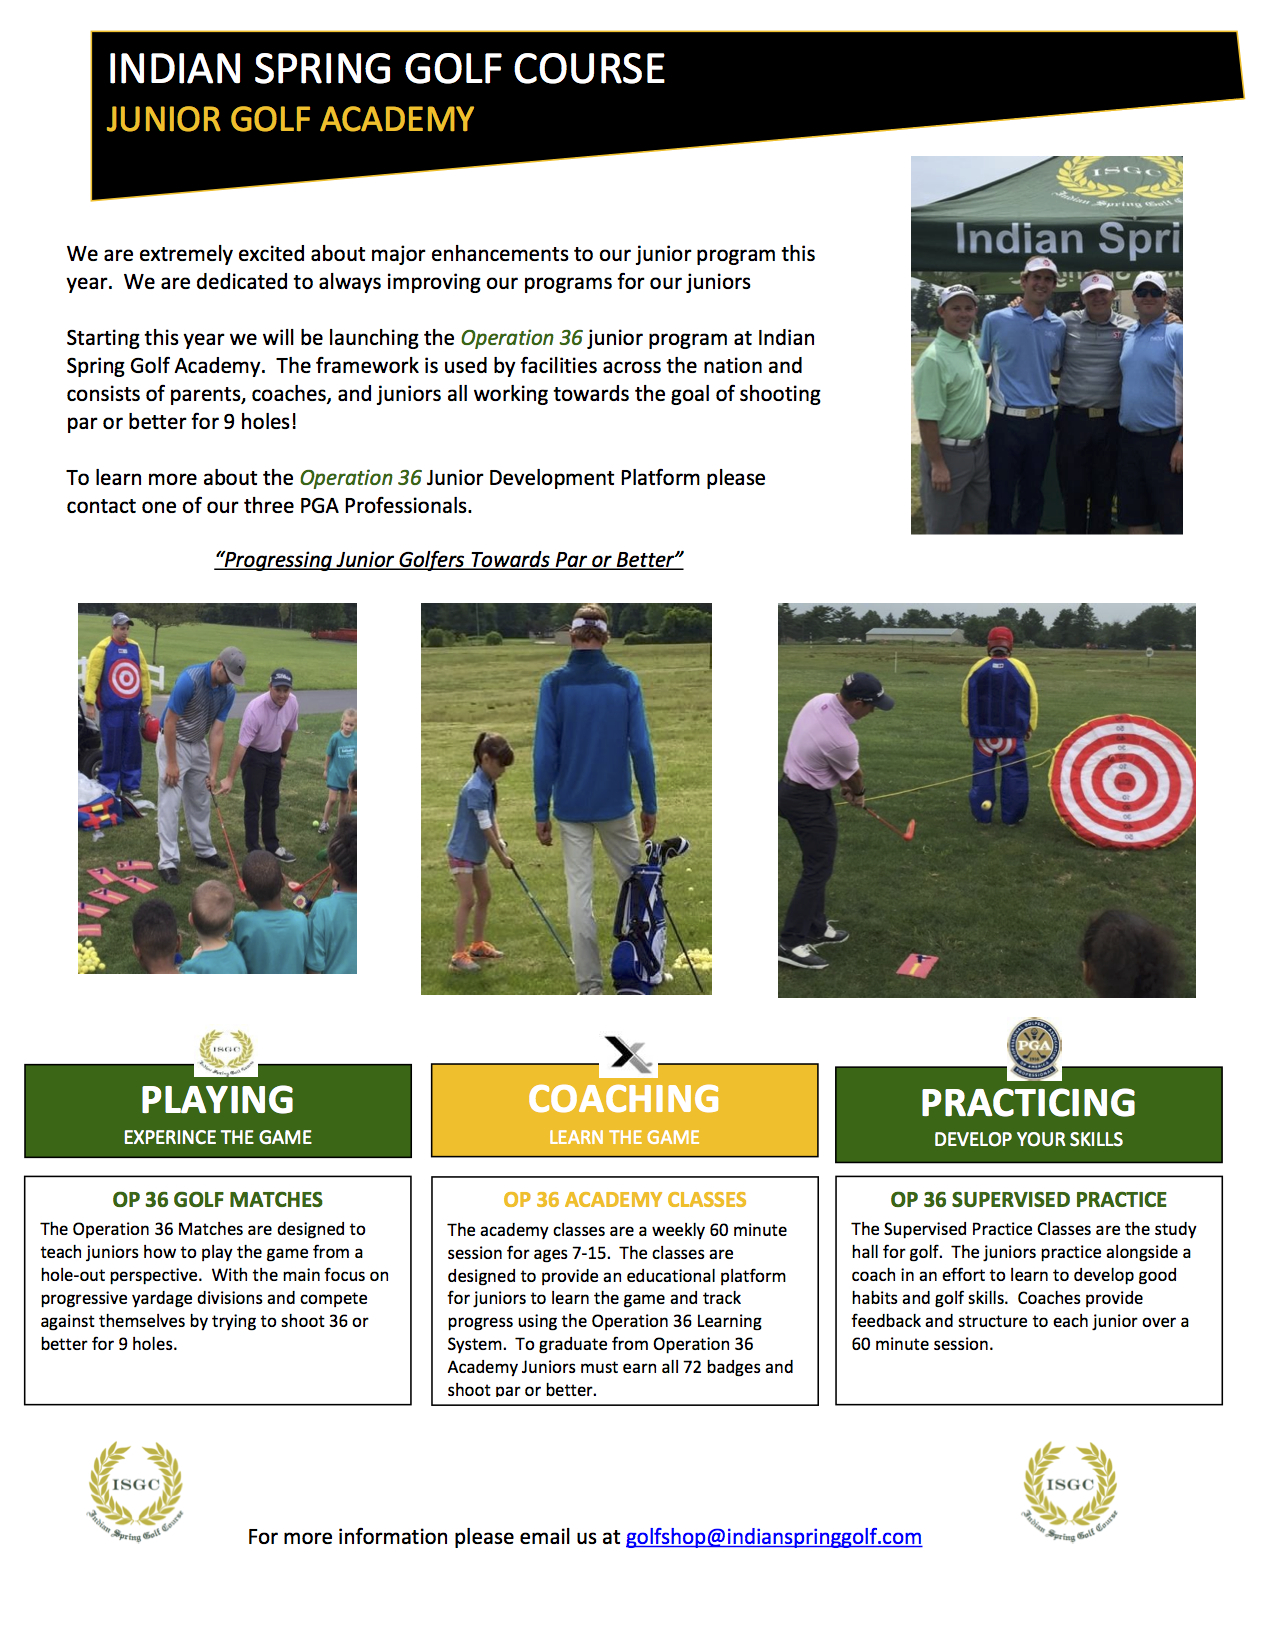 IGrow Golf Academy Flyer